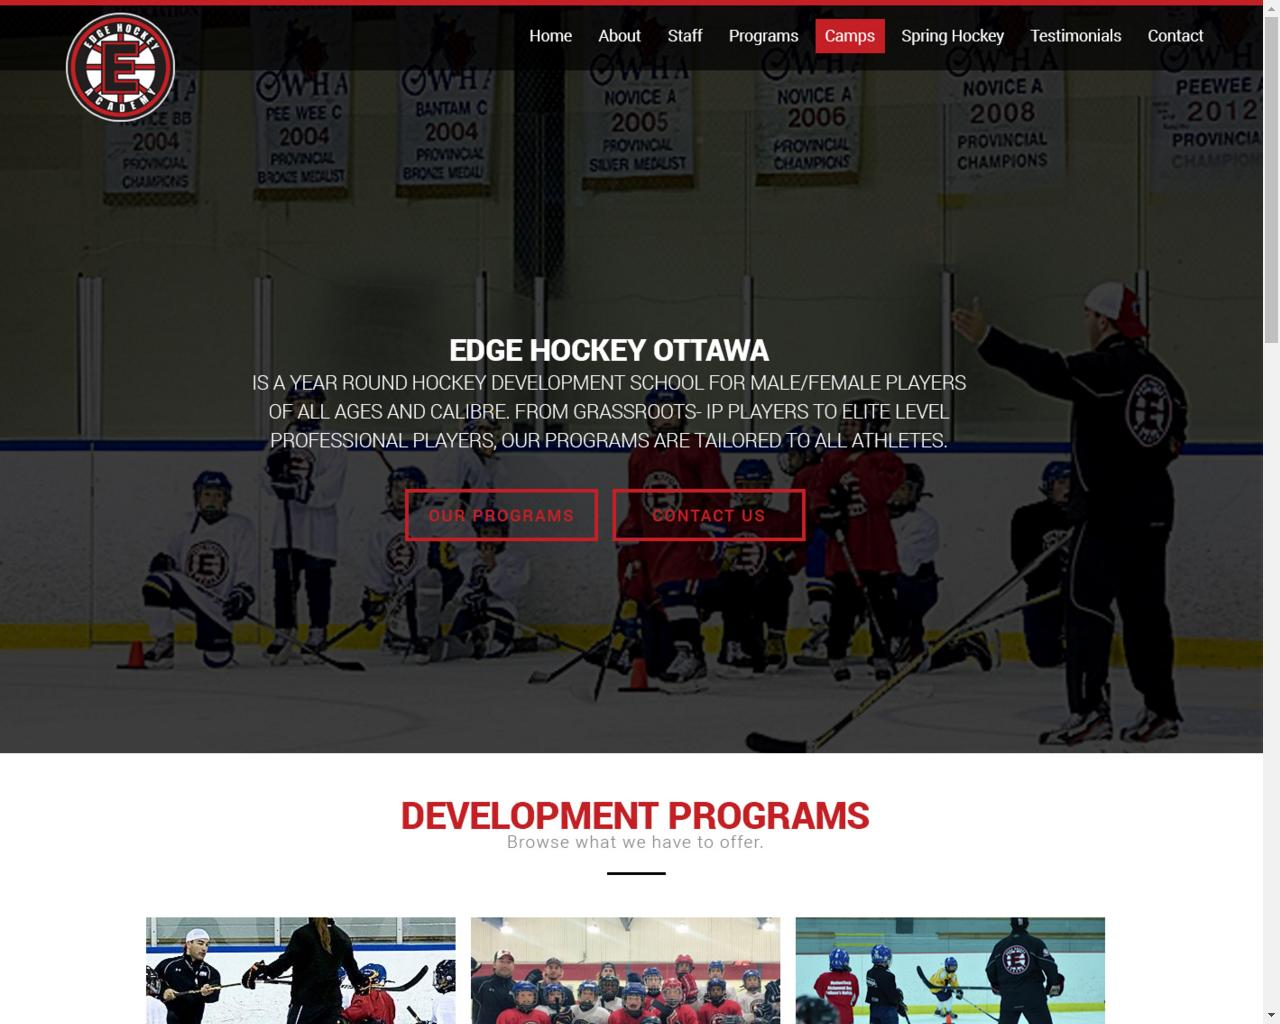 edgehockey